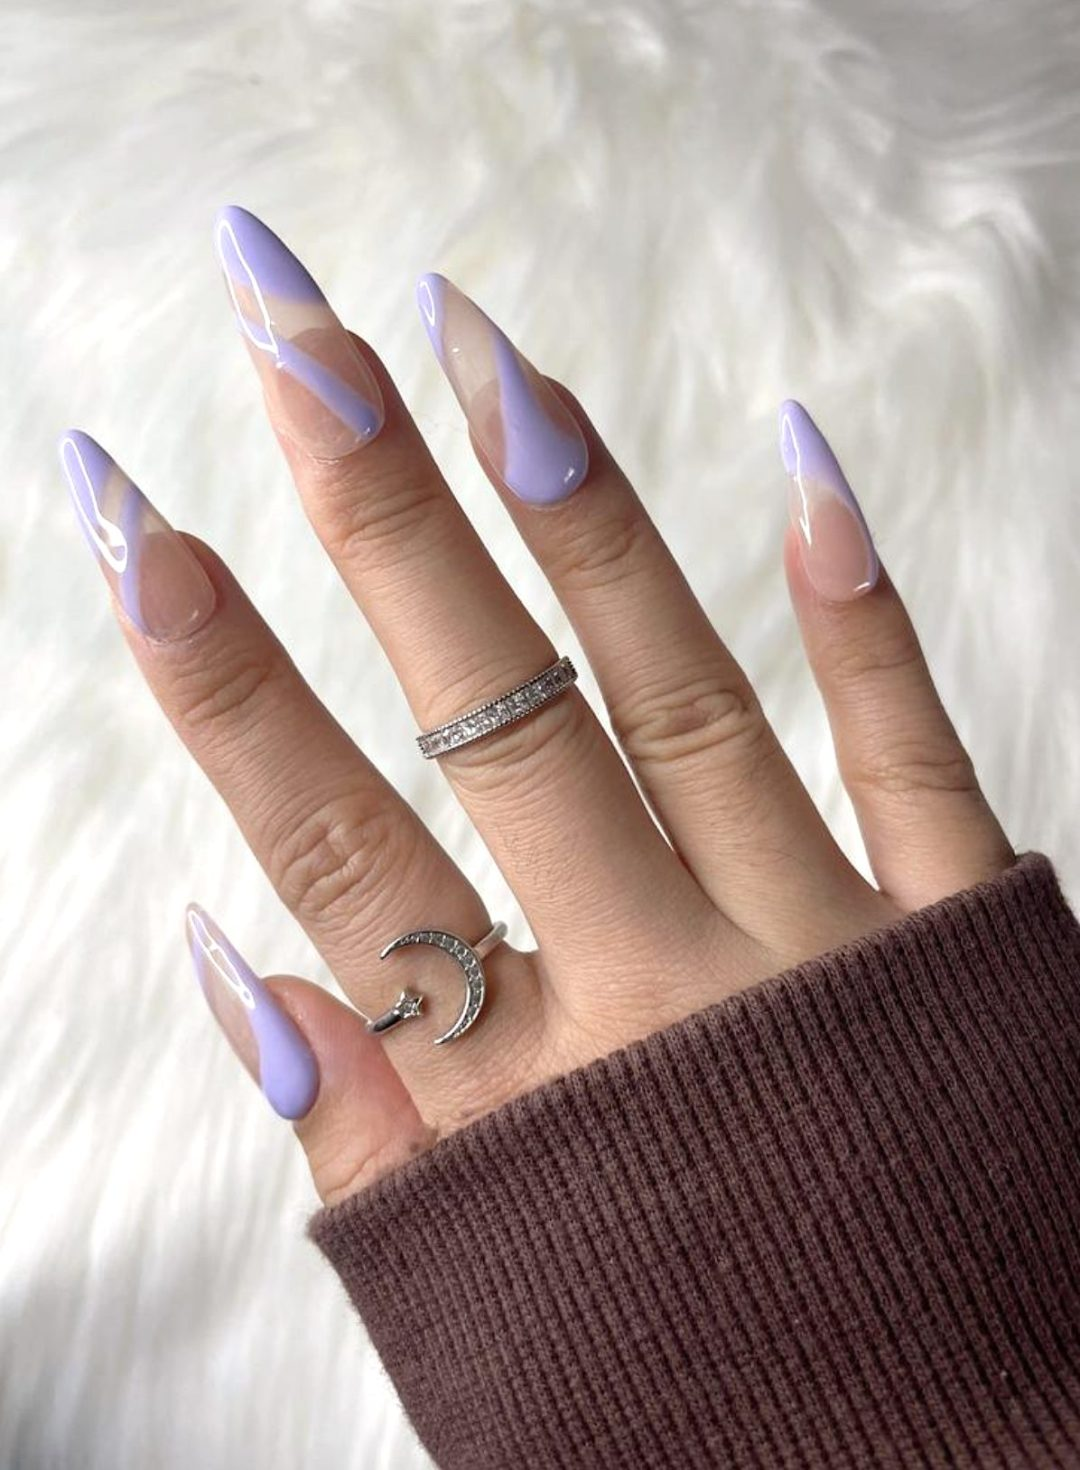 Pastel purple abstract nails with swirls